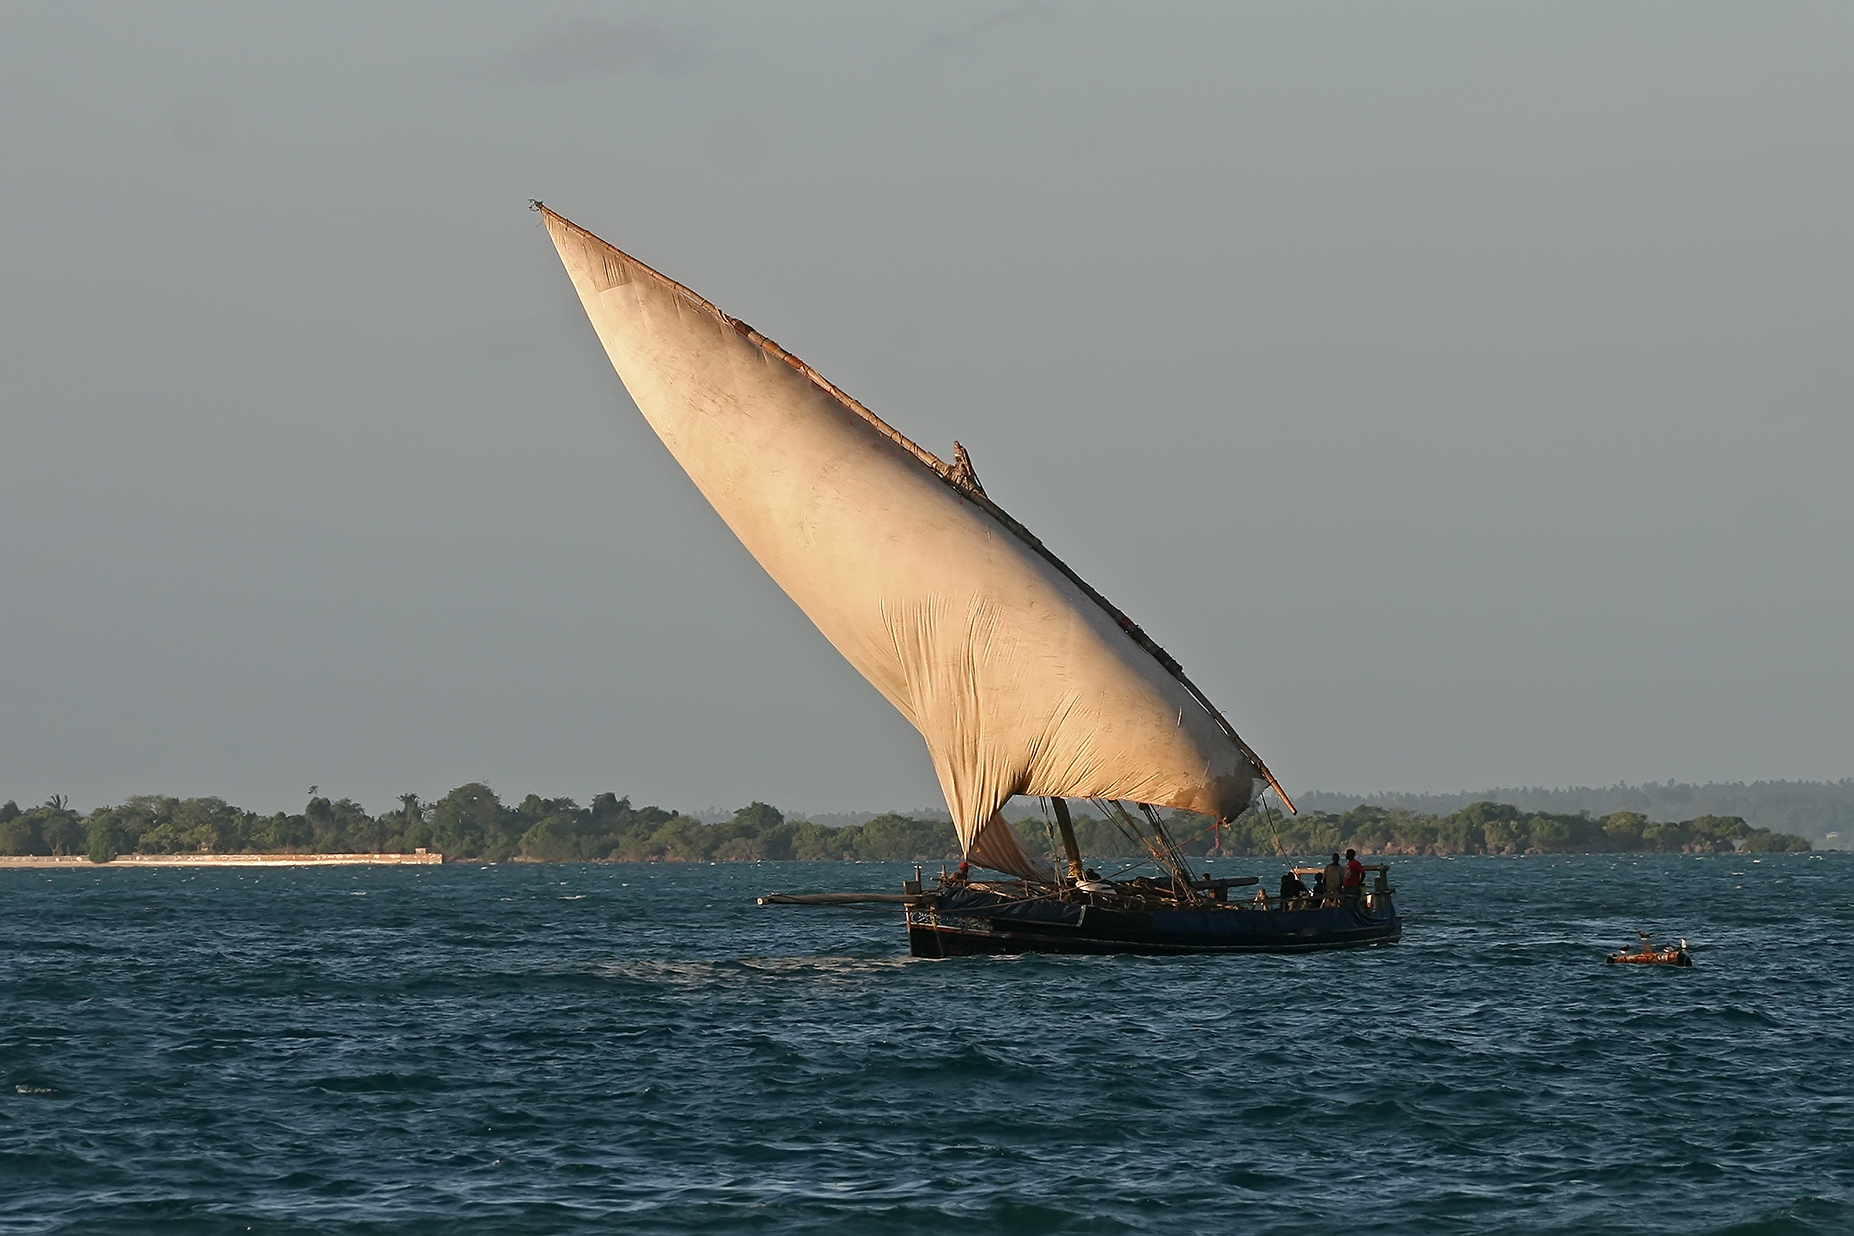 A small dhow in the Indian Ocean. Photo taken at Zanzibar on January 23, 2011.